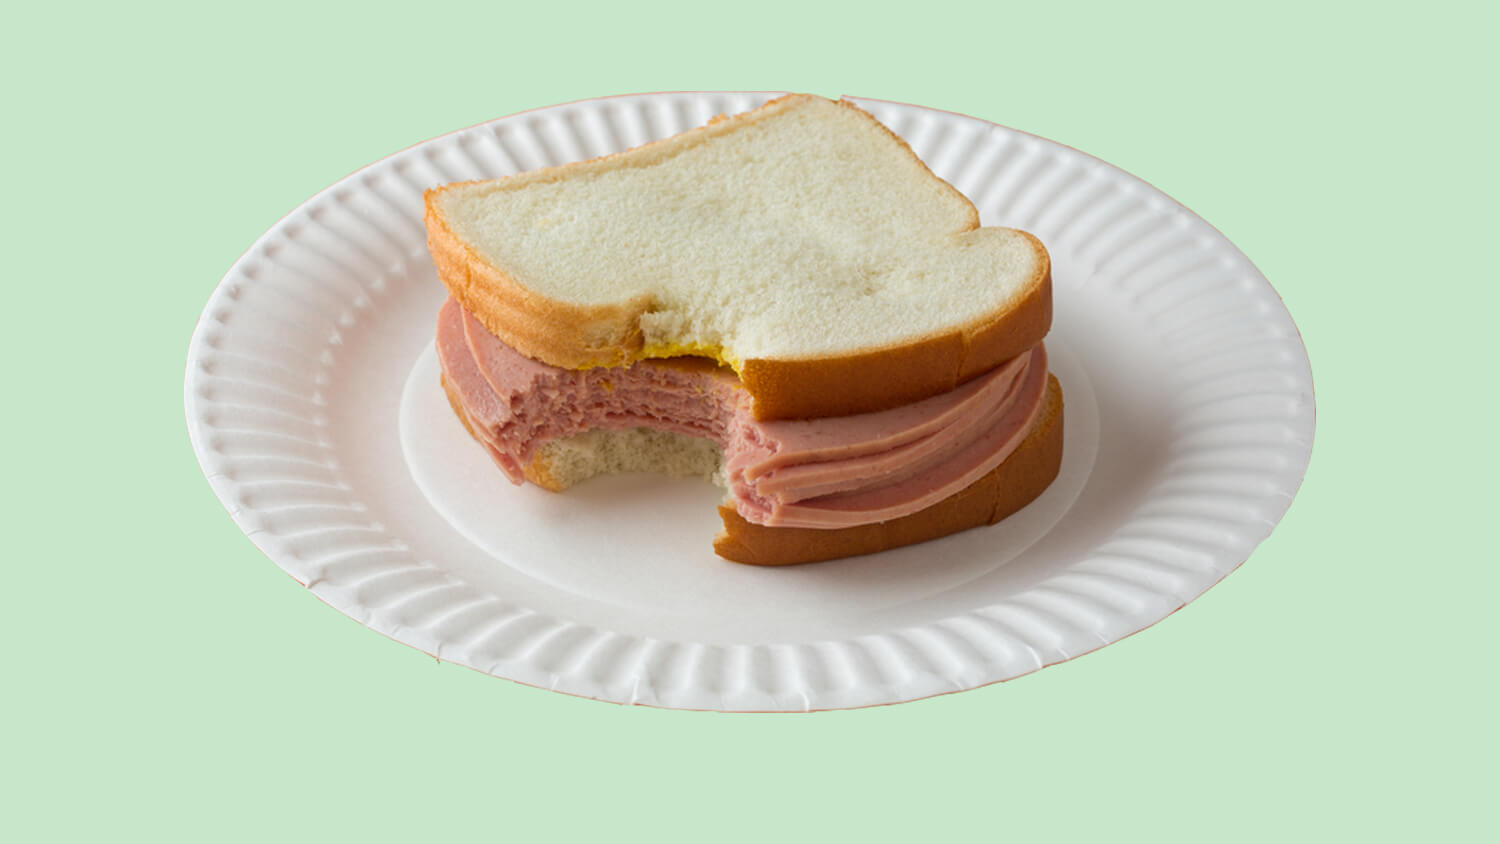 New Yorkers Urge City Council Members to Pass 'Baloney Ban' Resolution 238 on Processed Meats In Schools